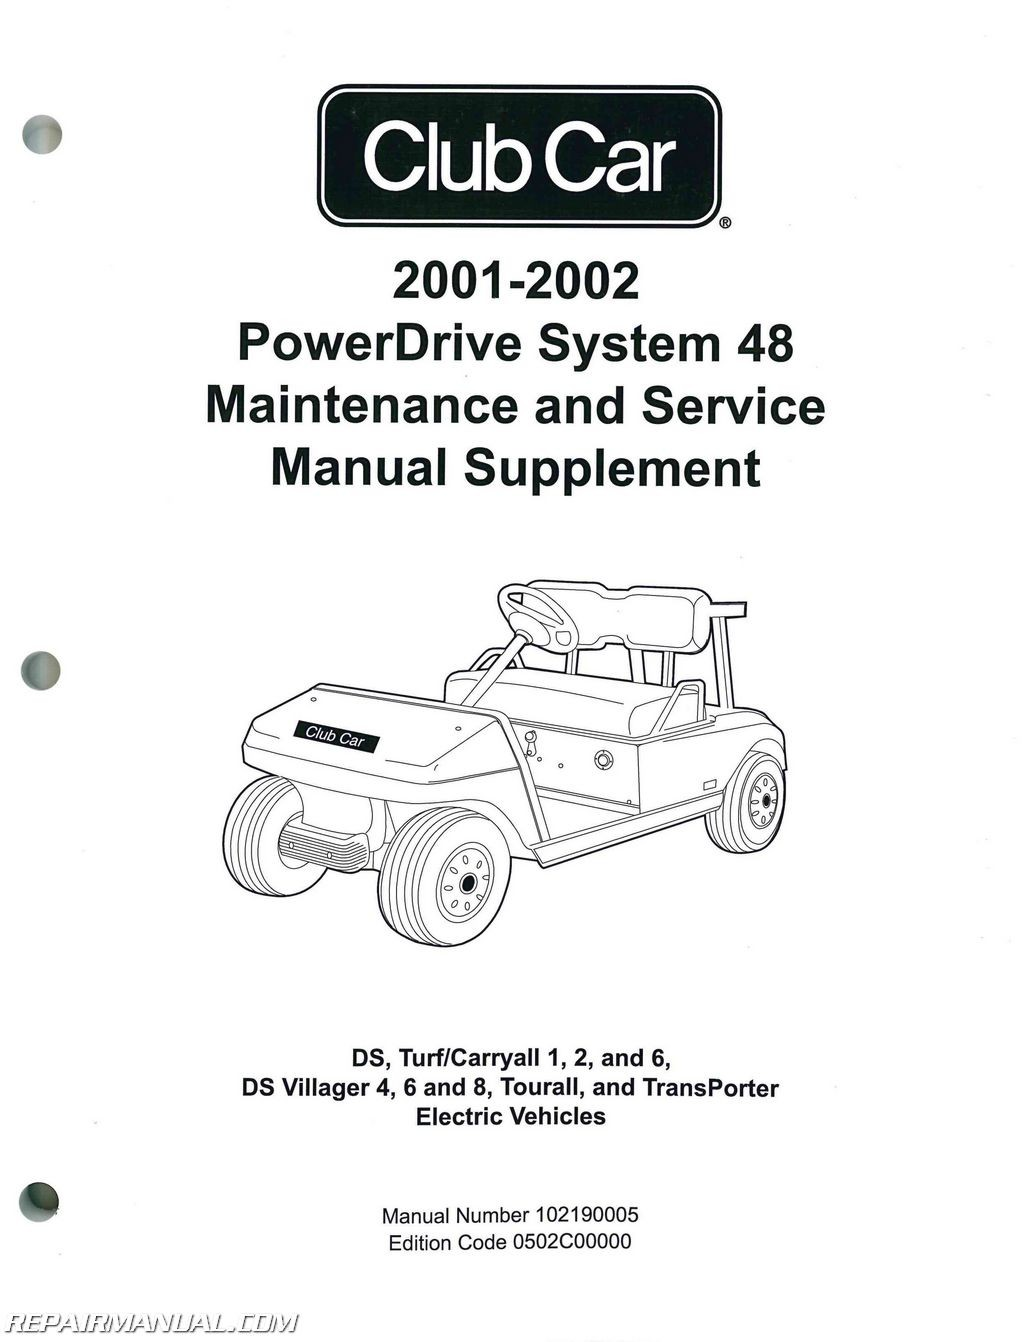 Free Club Car Manual